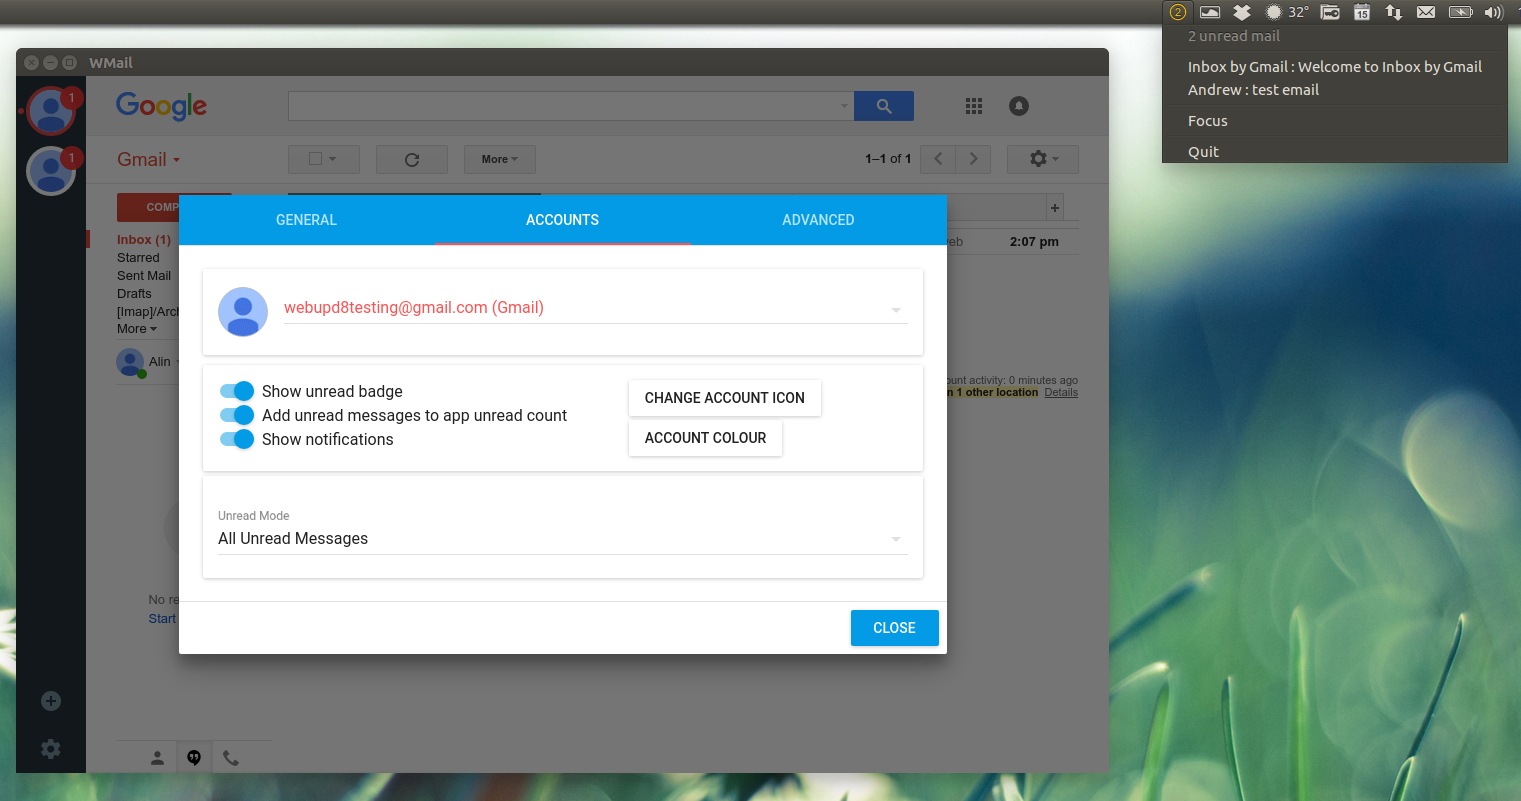 Wmail Is A Nice Desktop App For Gmail And Google Inbox With